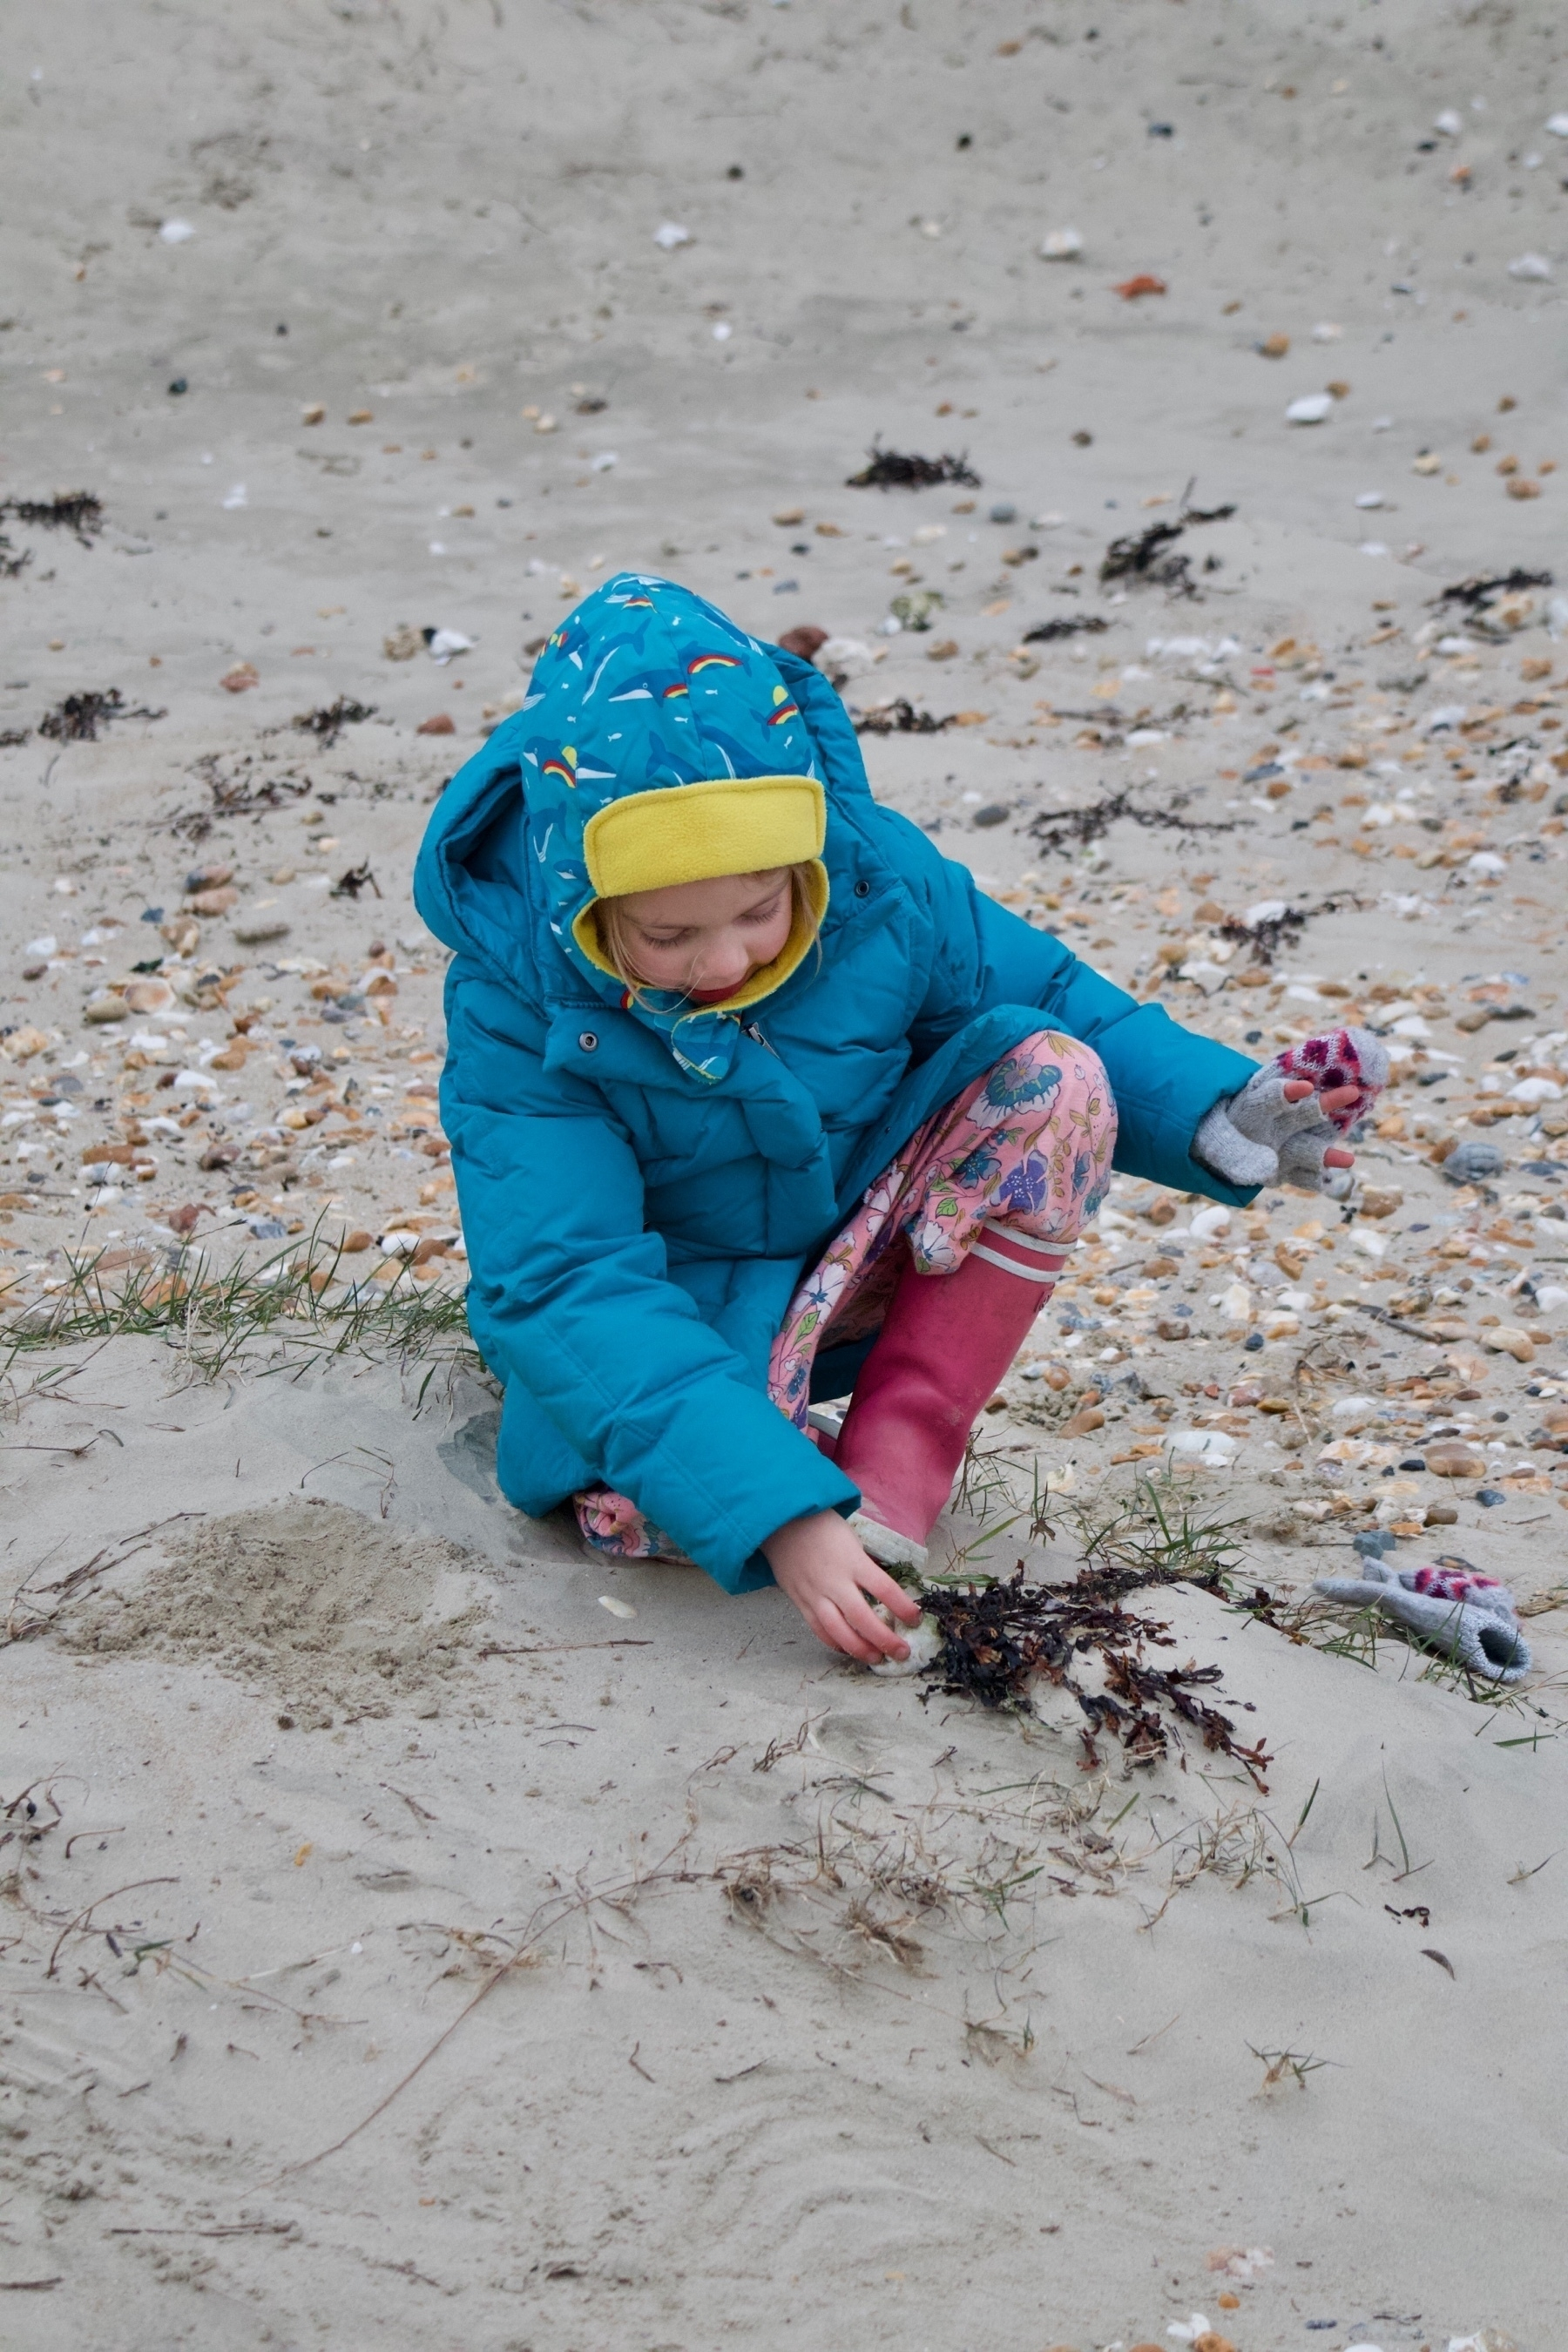 A girl, wrapped up for winter weather, playing on a beach.